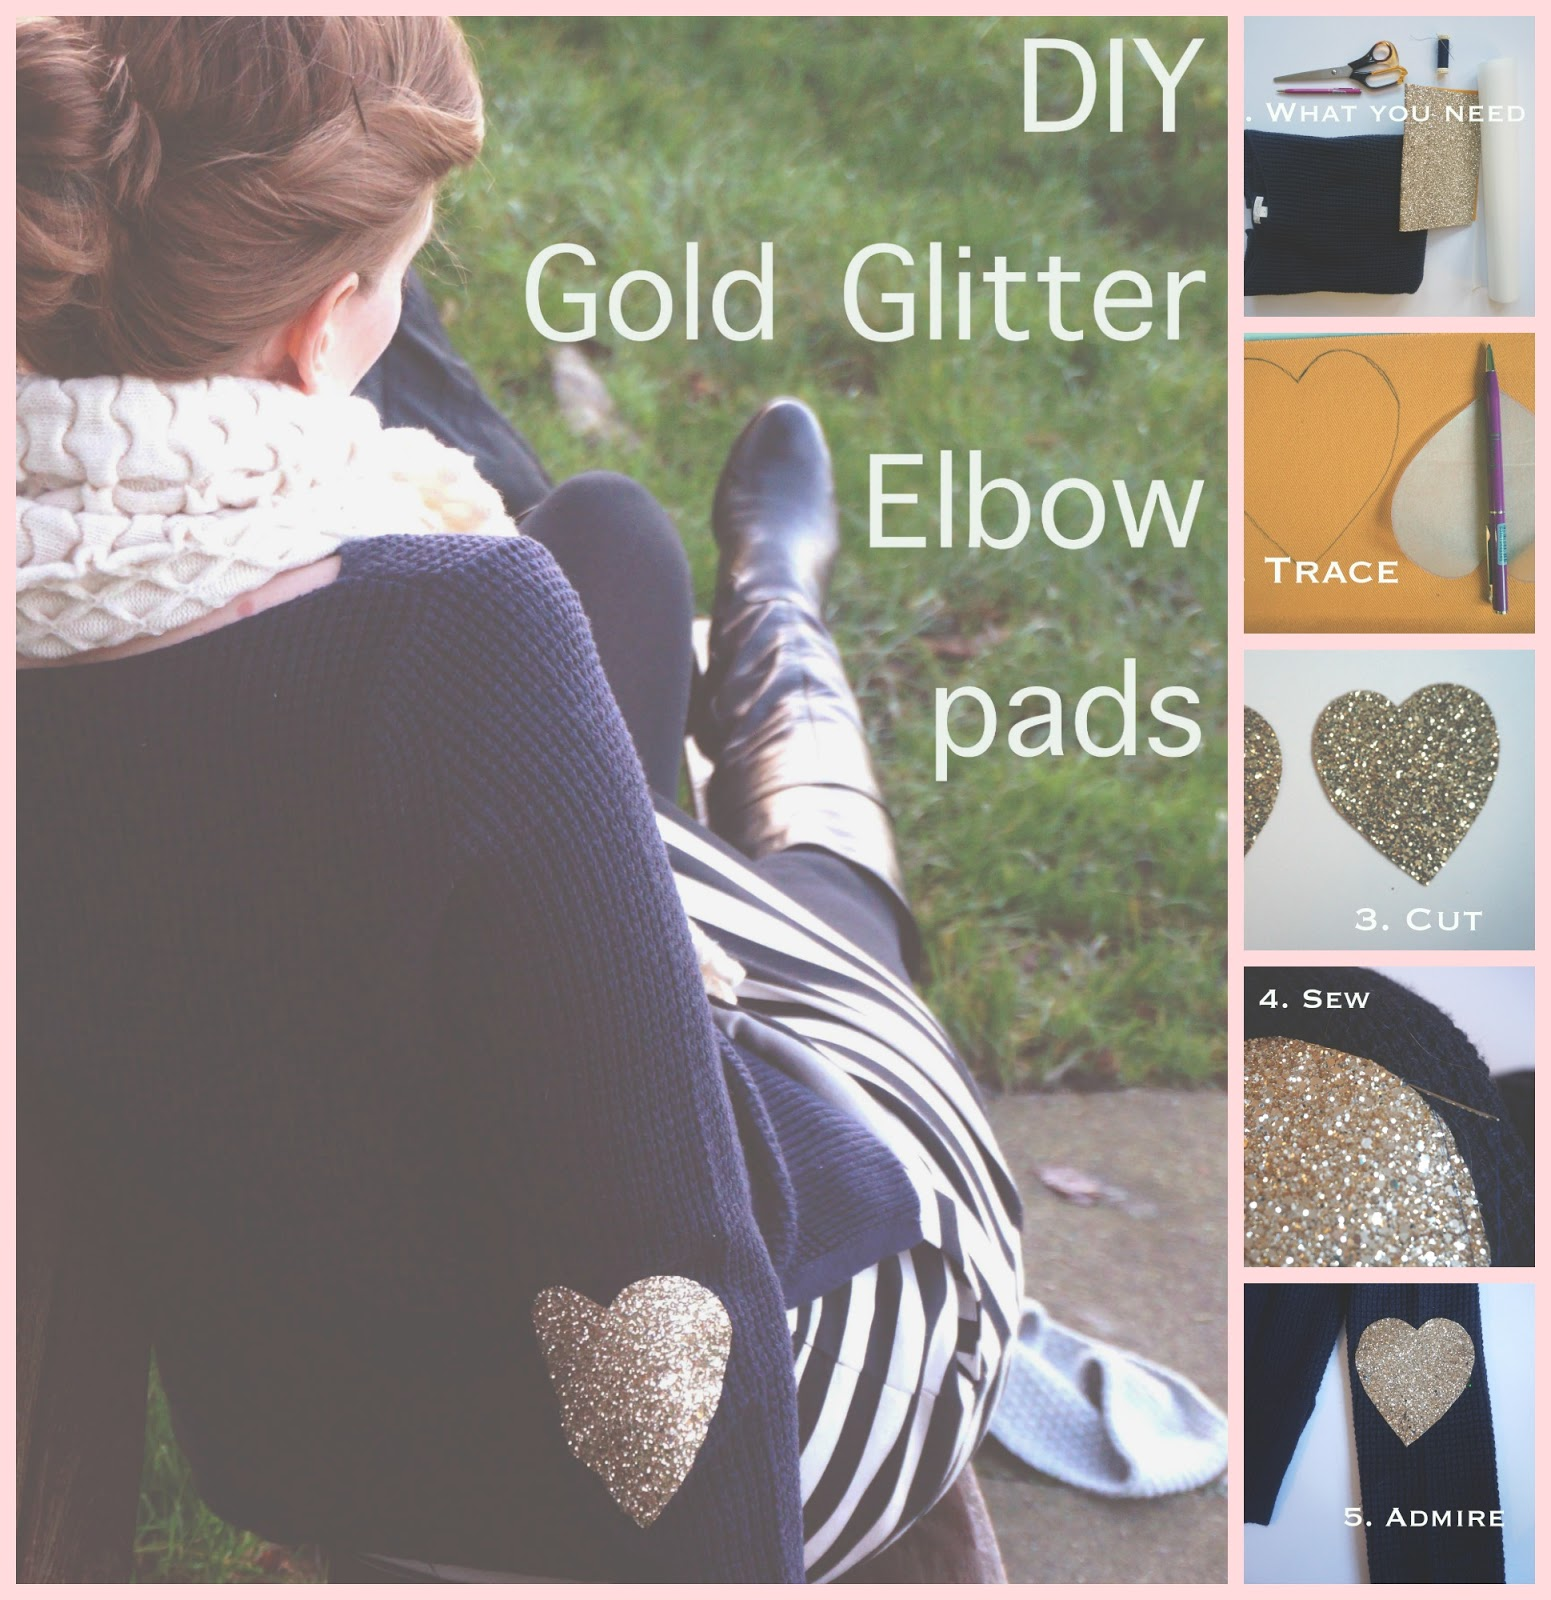 meg-made: Gold glitter heart elbow pads DIY